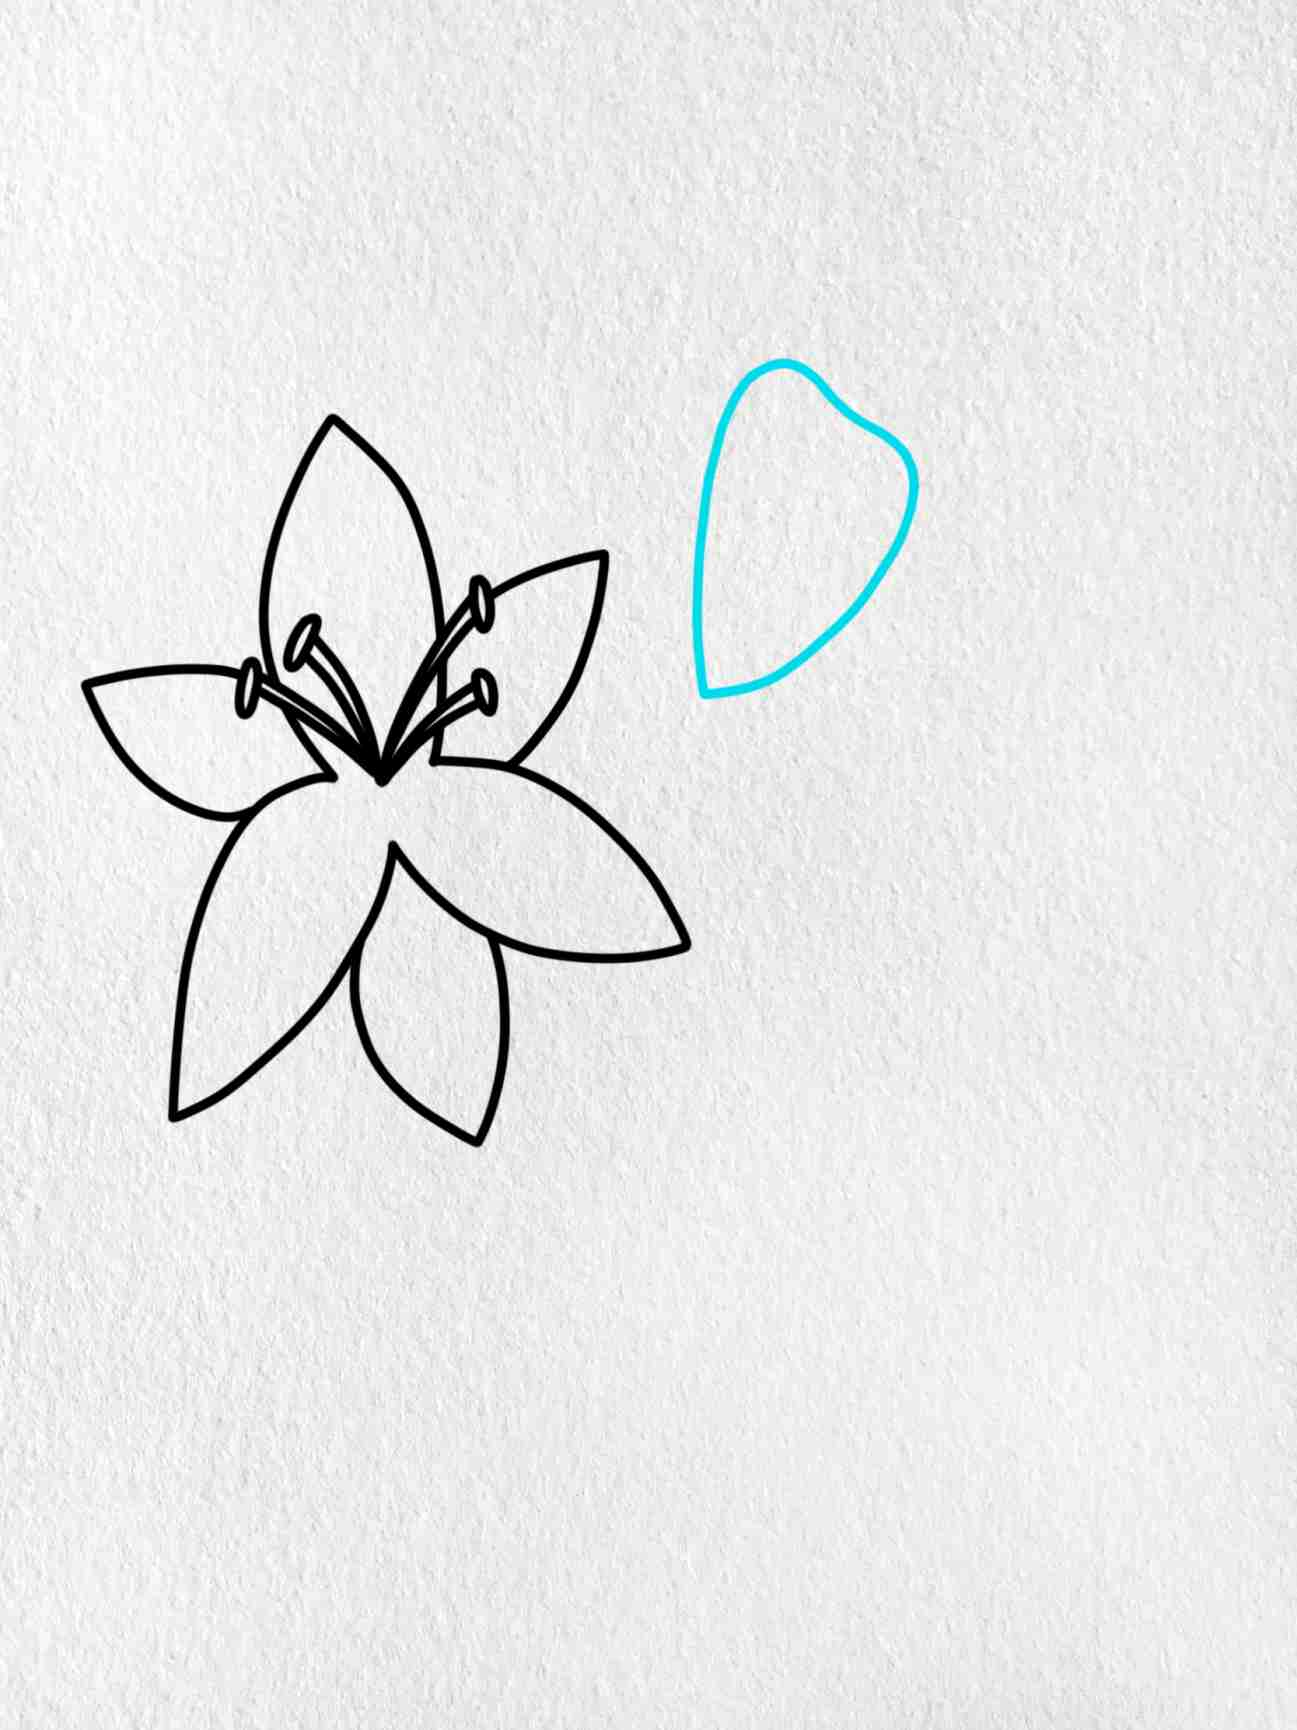 How To Draw A Lily: Step 3